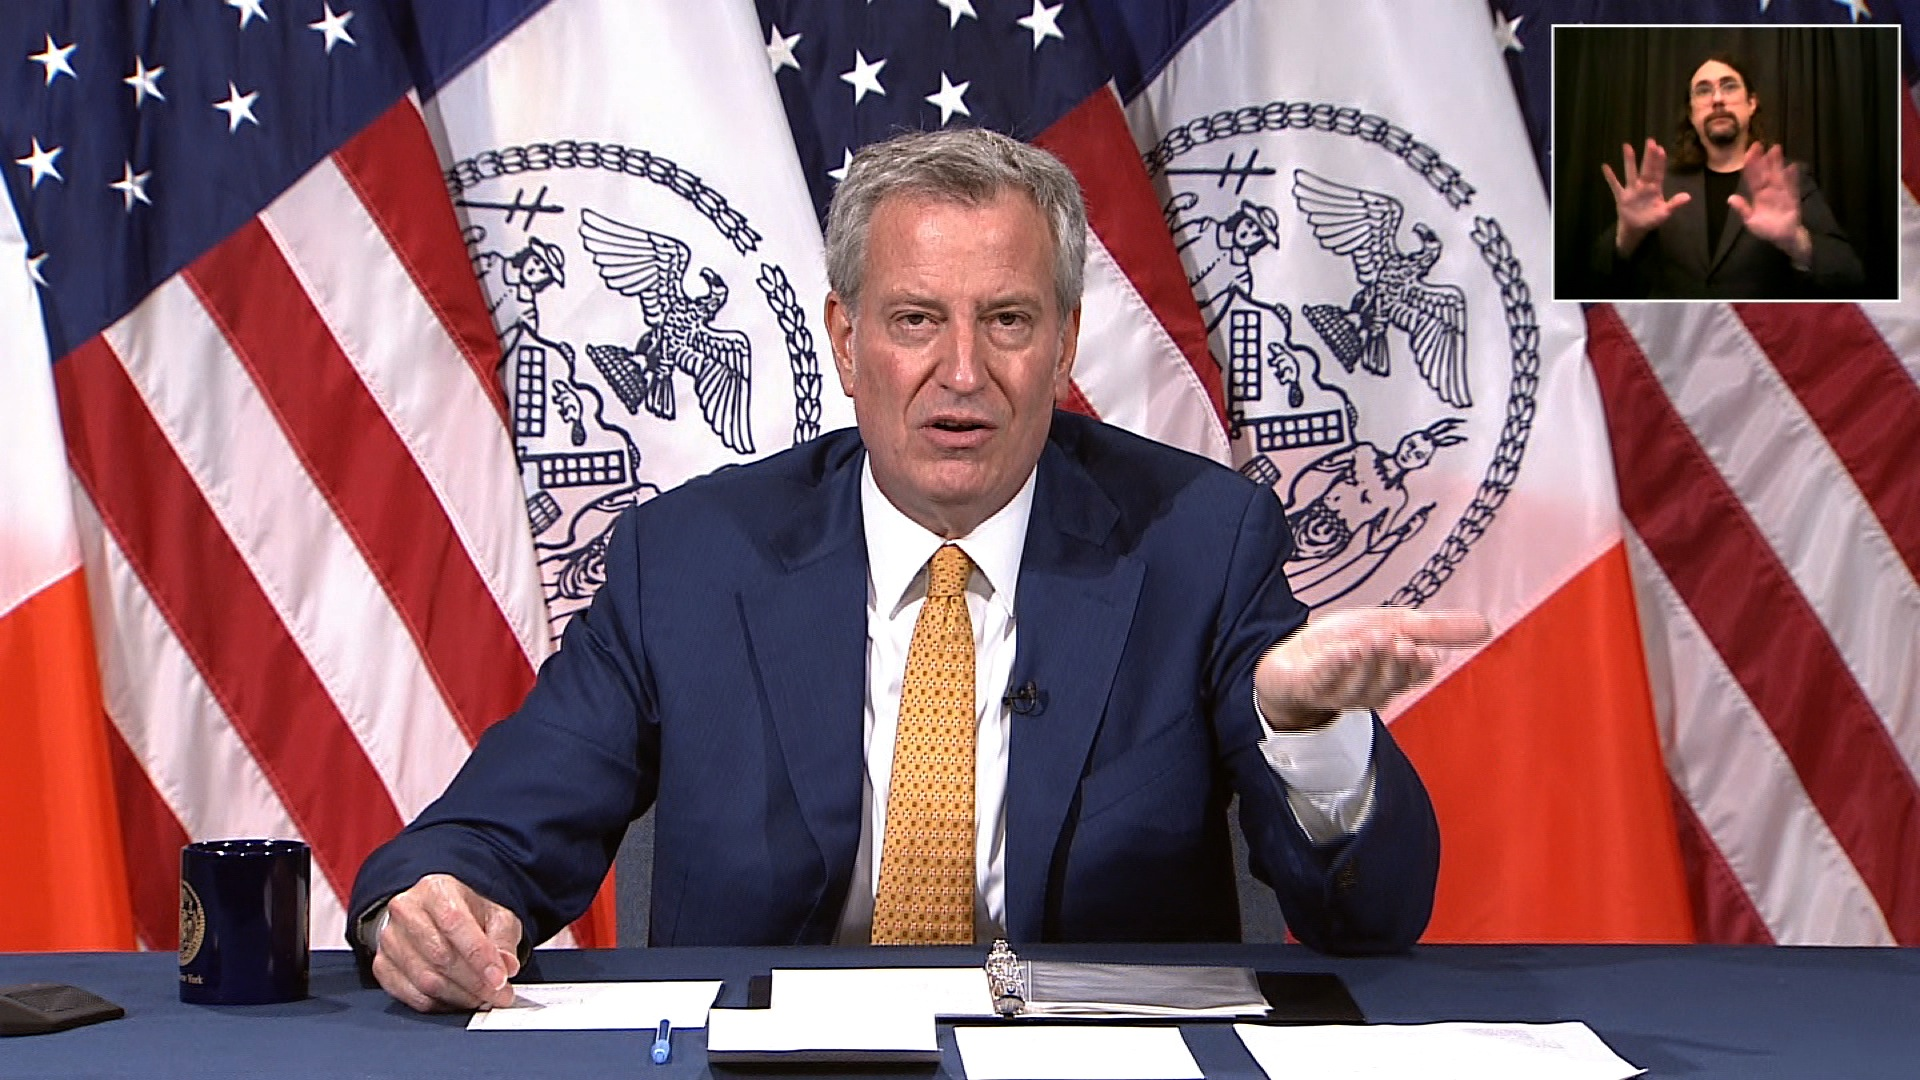 New York City Mayor Bill de Blasio speaks during a press conference in New York on July 8.